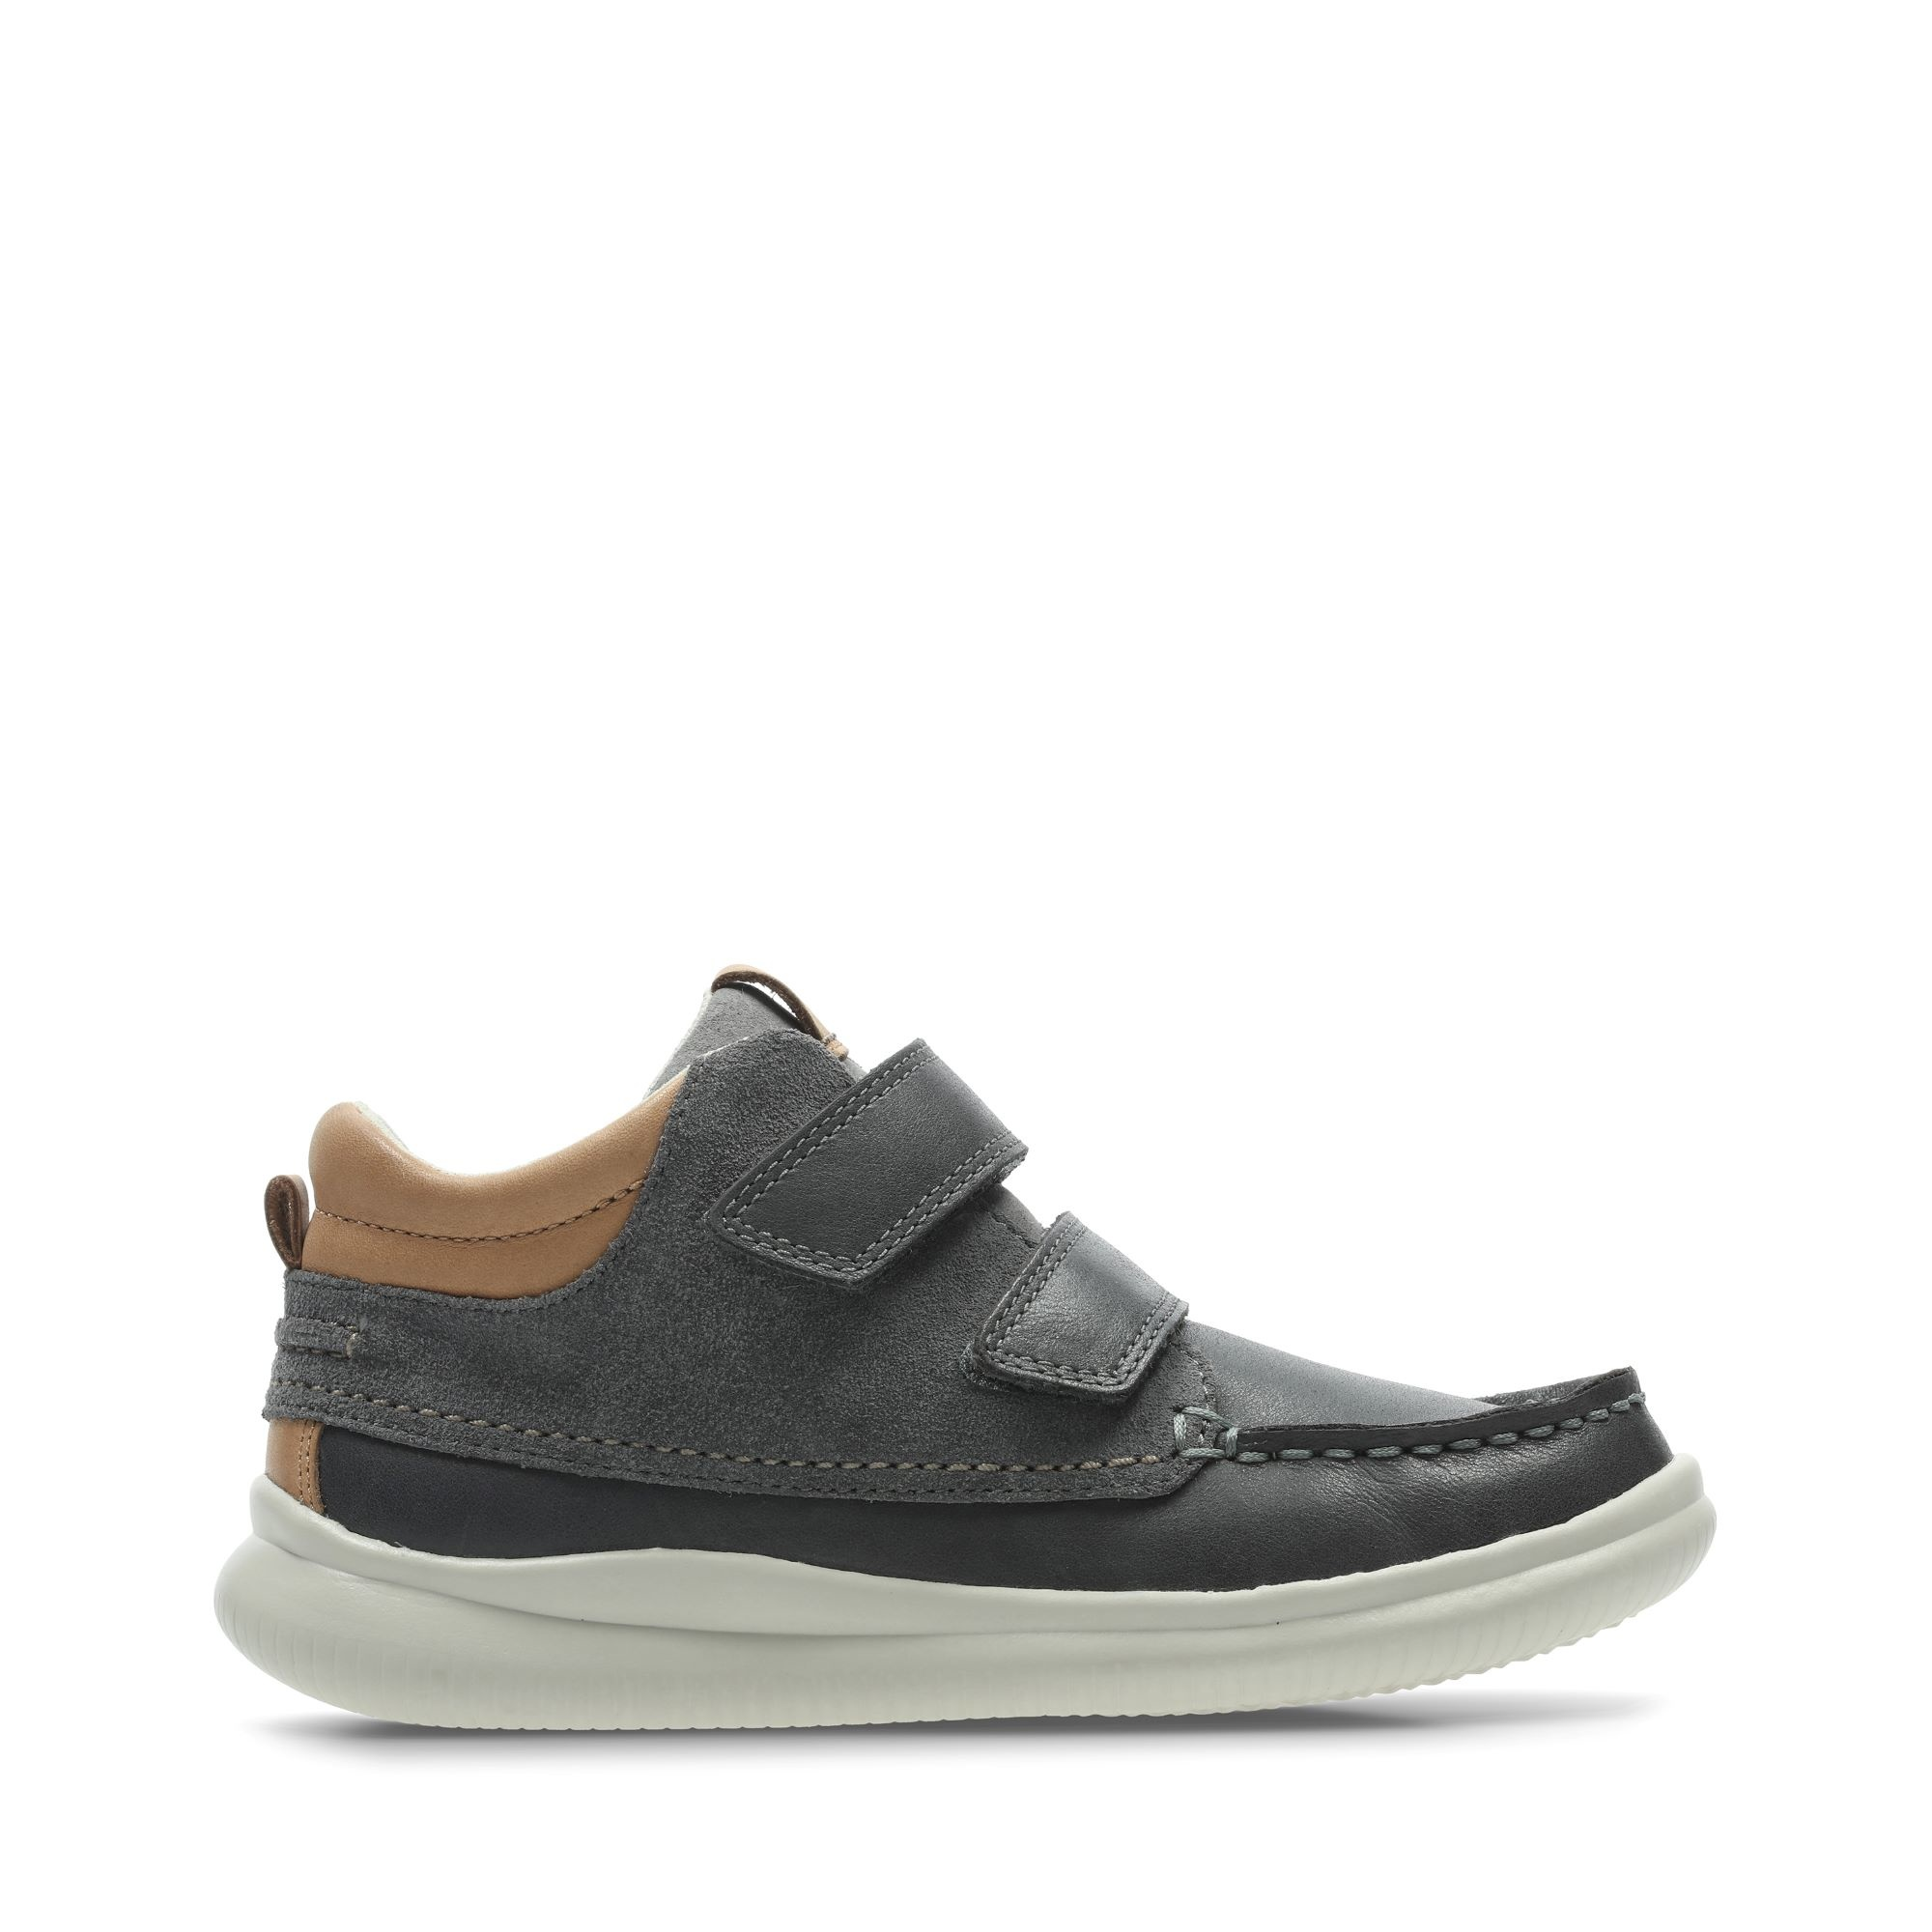 Clarks Cloud Tuktu Grey